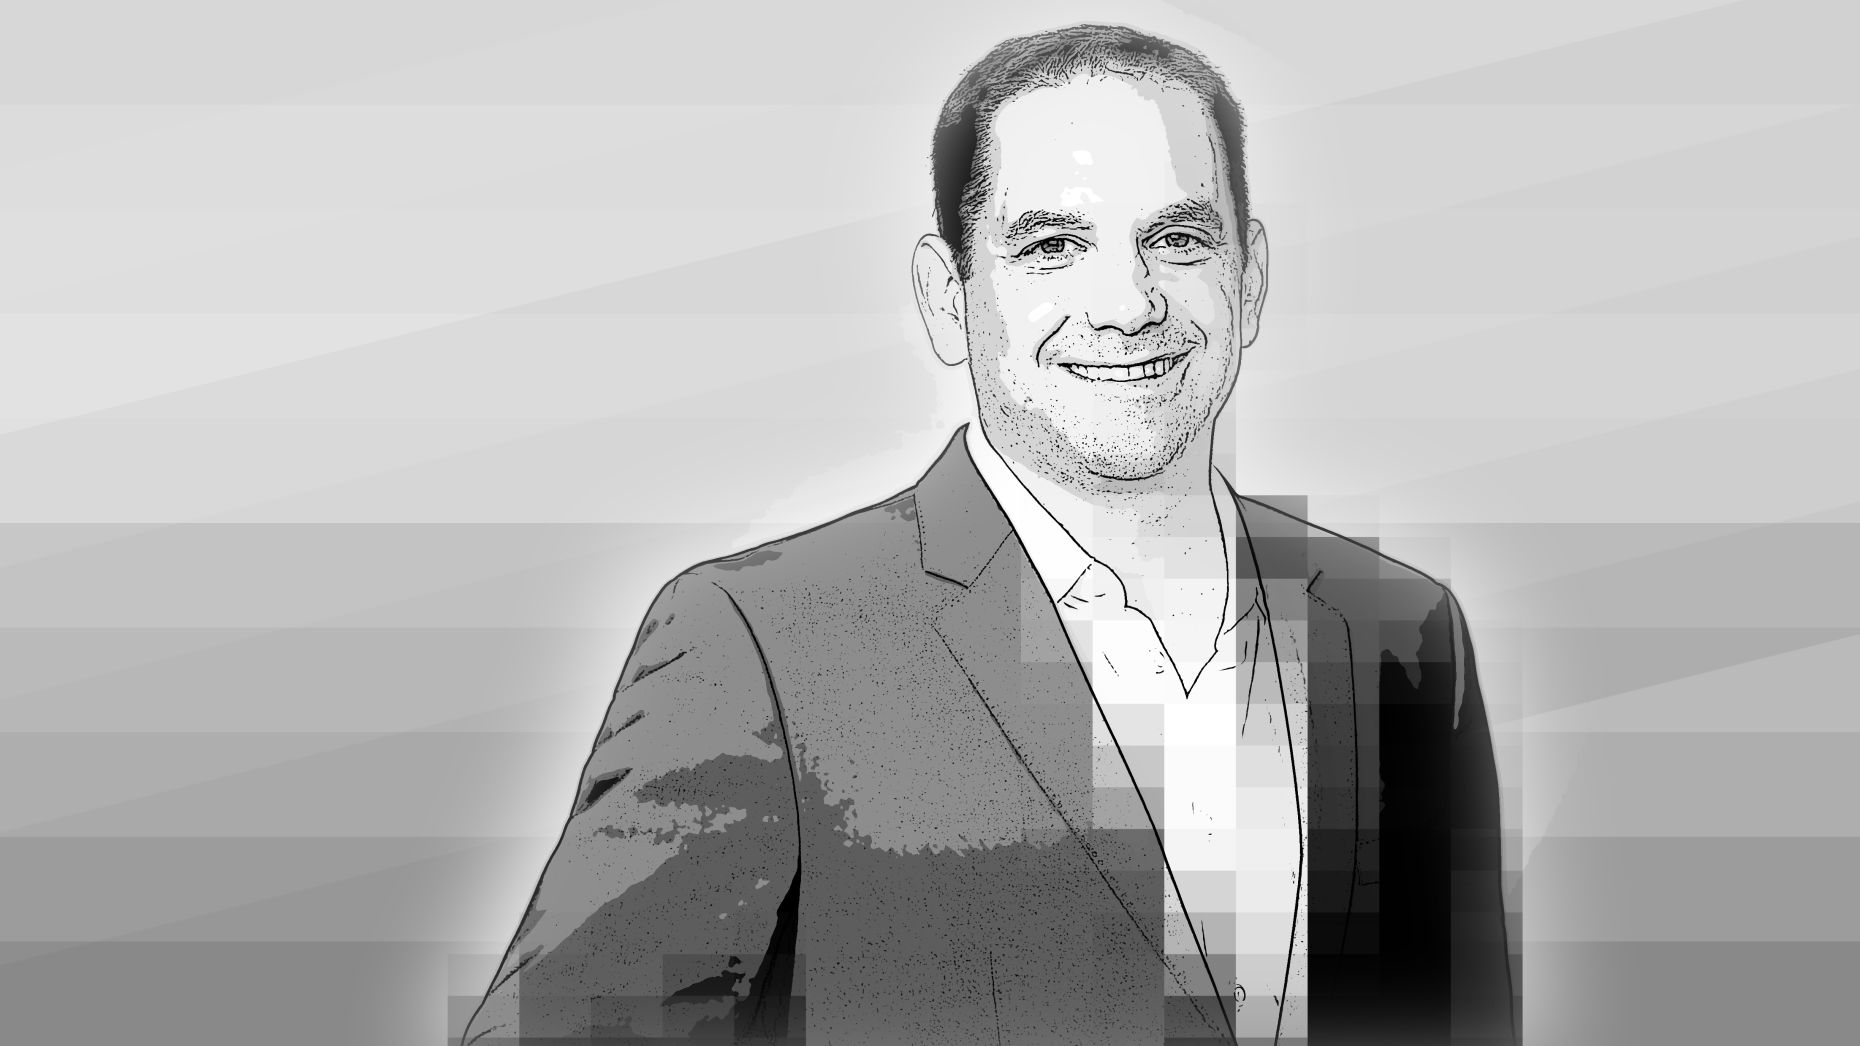 Andrew Morse, executive vice president of CNN US and head of CNN digital worldwide. Art by Matt Vascellaro.